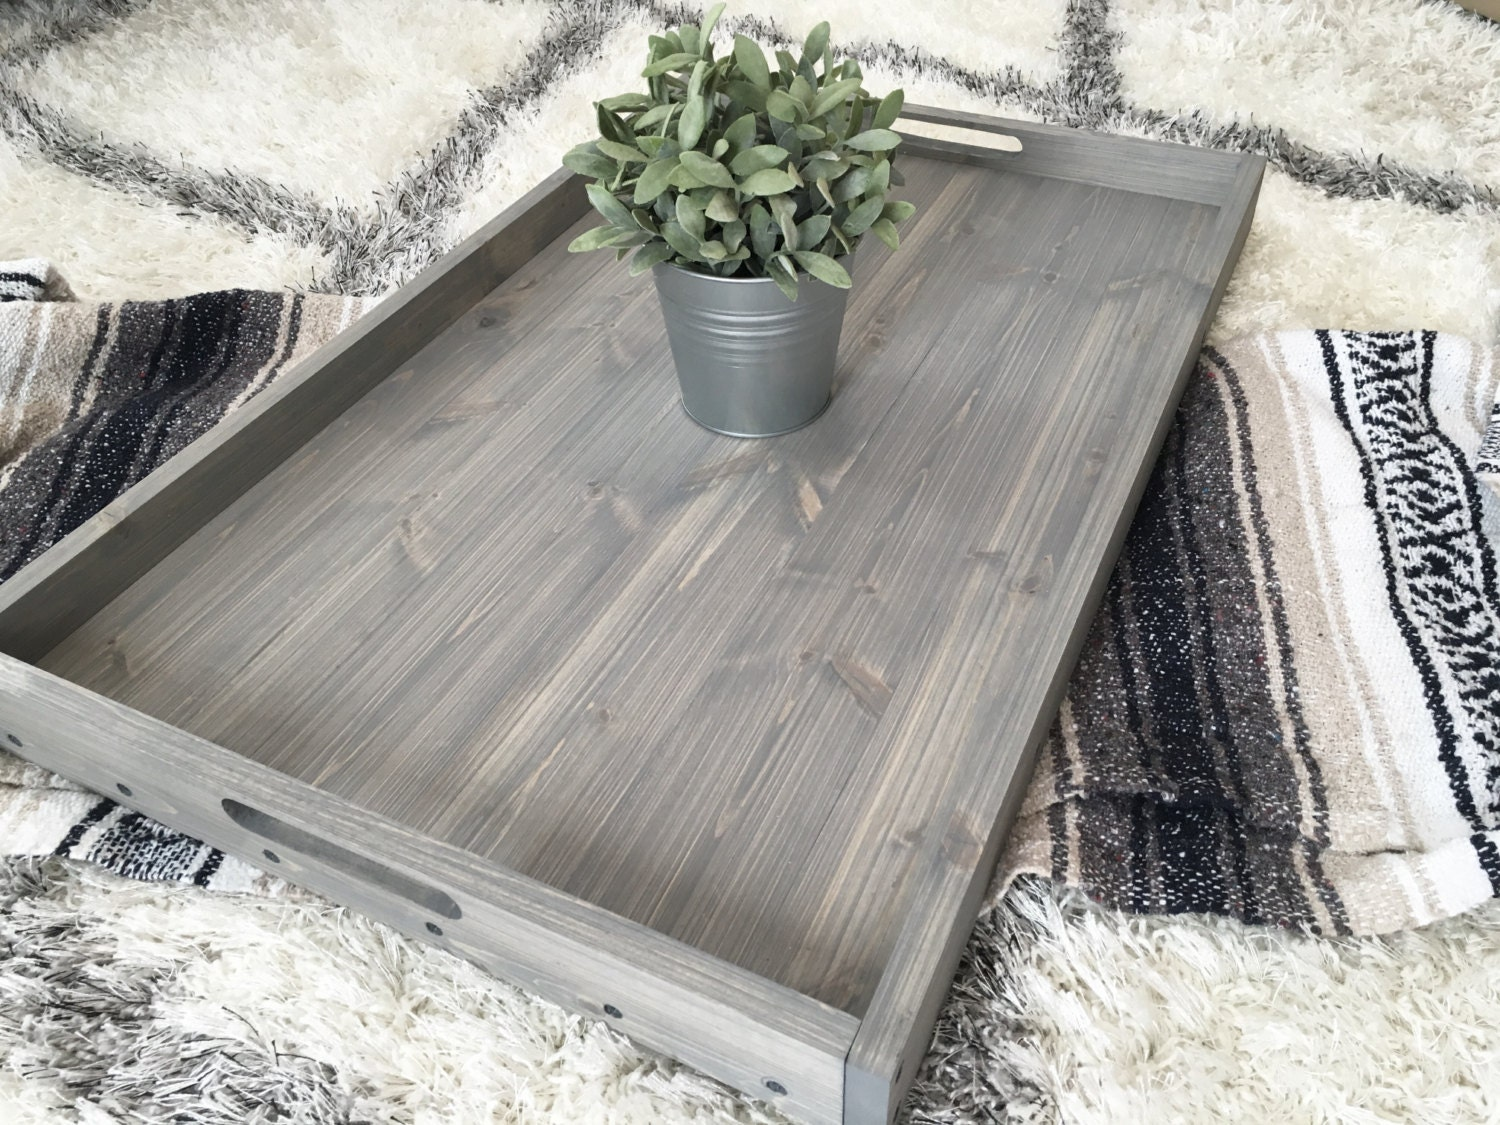 Rustic wooden ottoman tray coffee table tray serving tray rustic wooden ottoman tray coffee table tray serving tray wooden tray rustic home decor farmhouse decor rustic tray wood tray geotapseo Choice Image